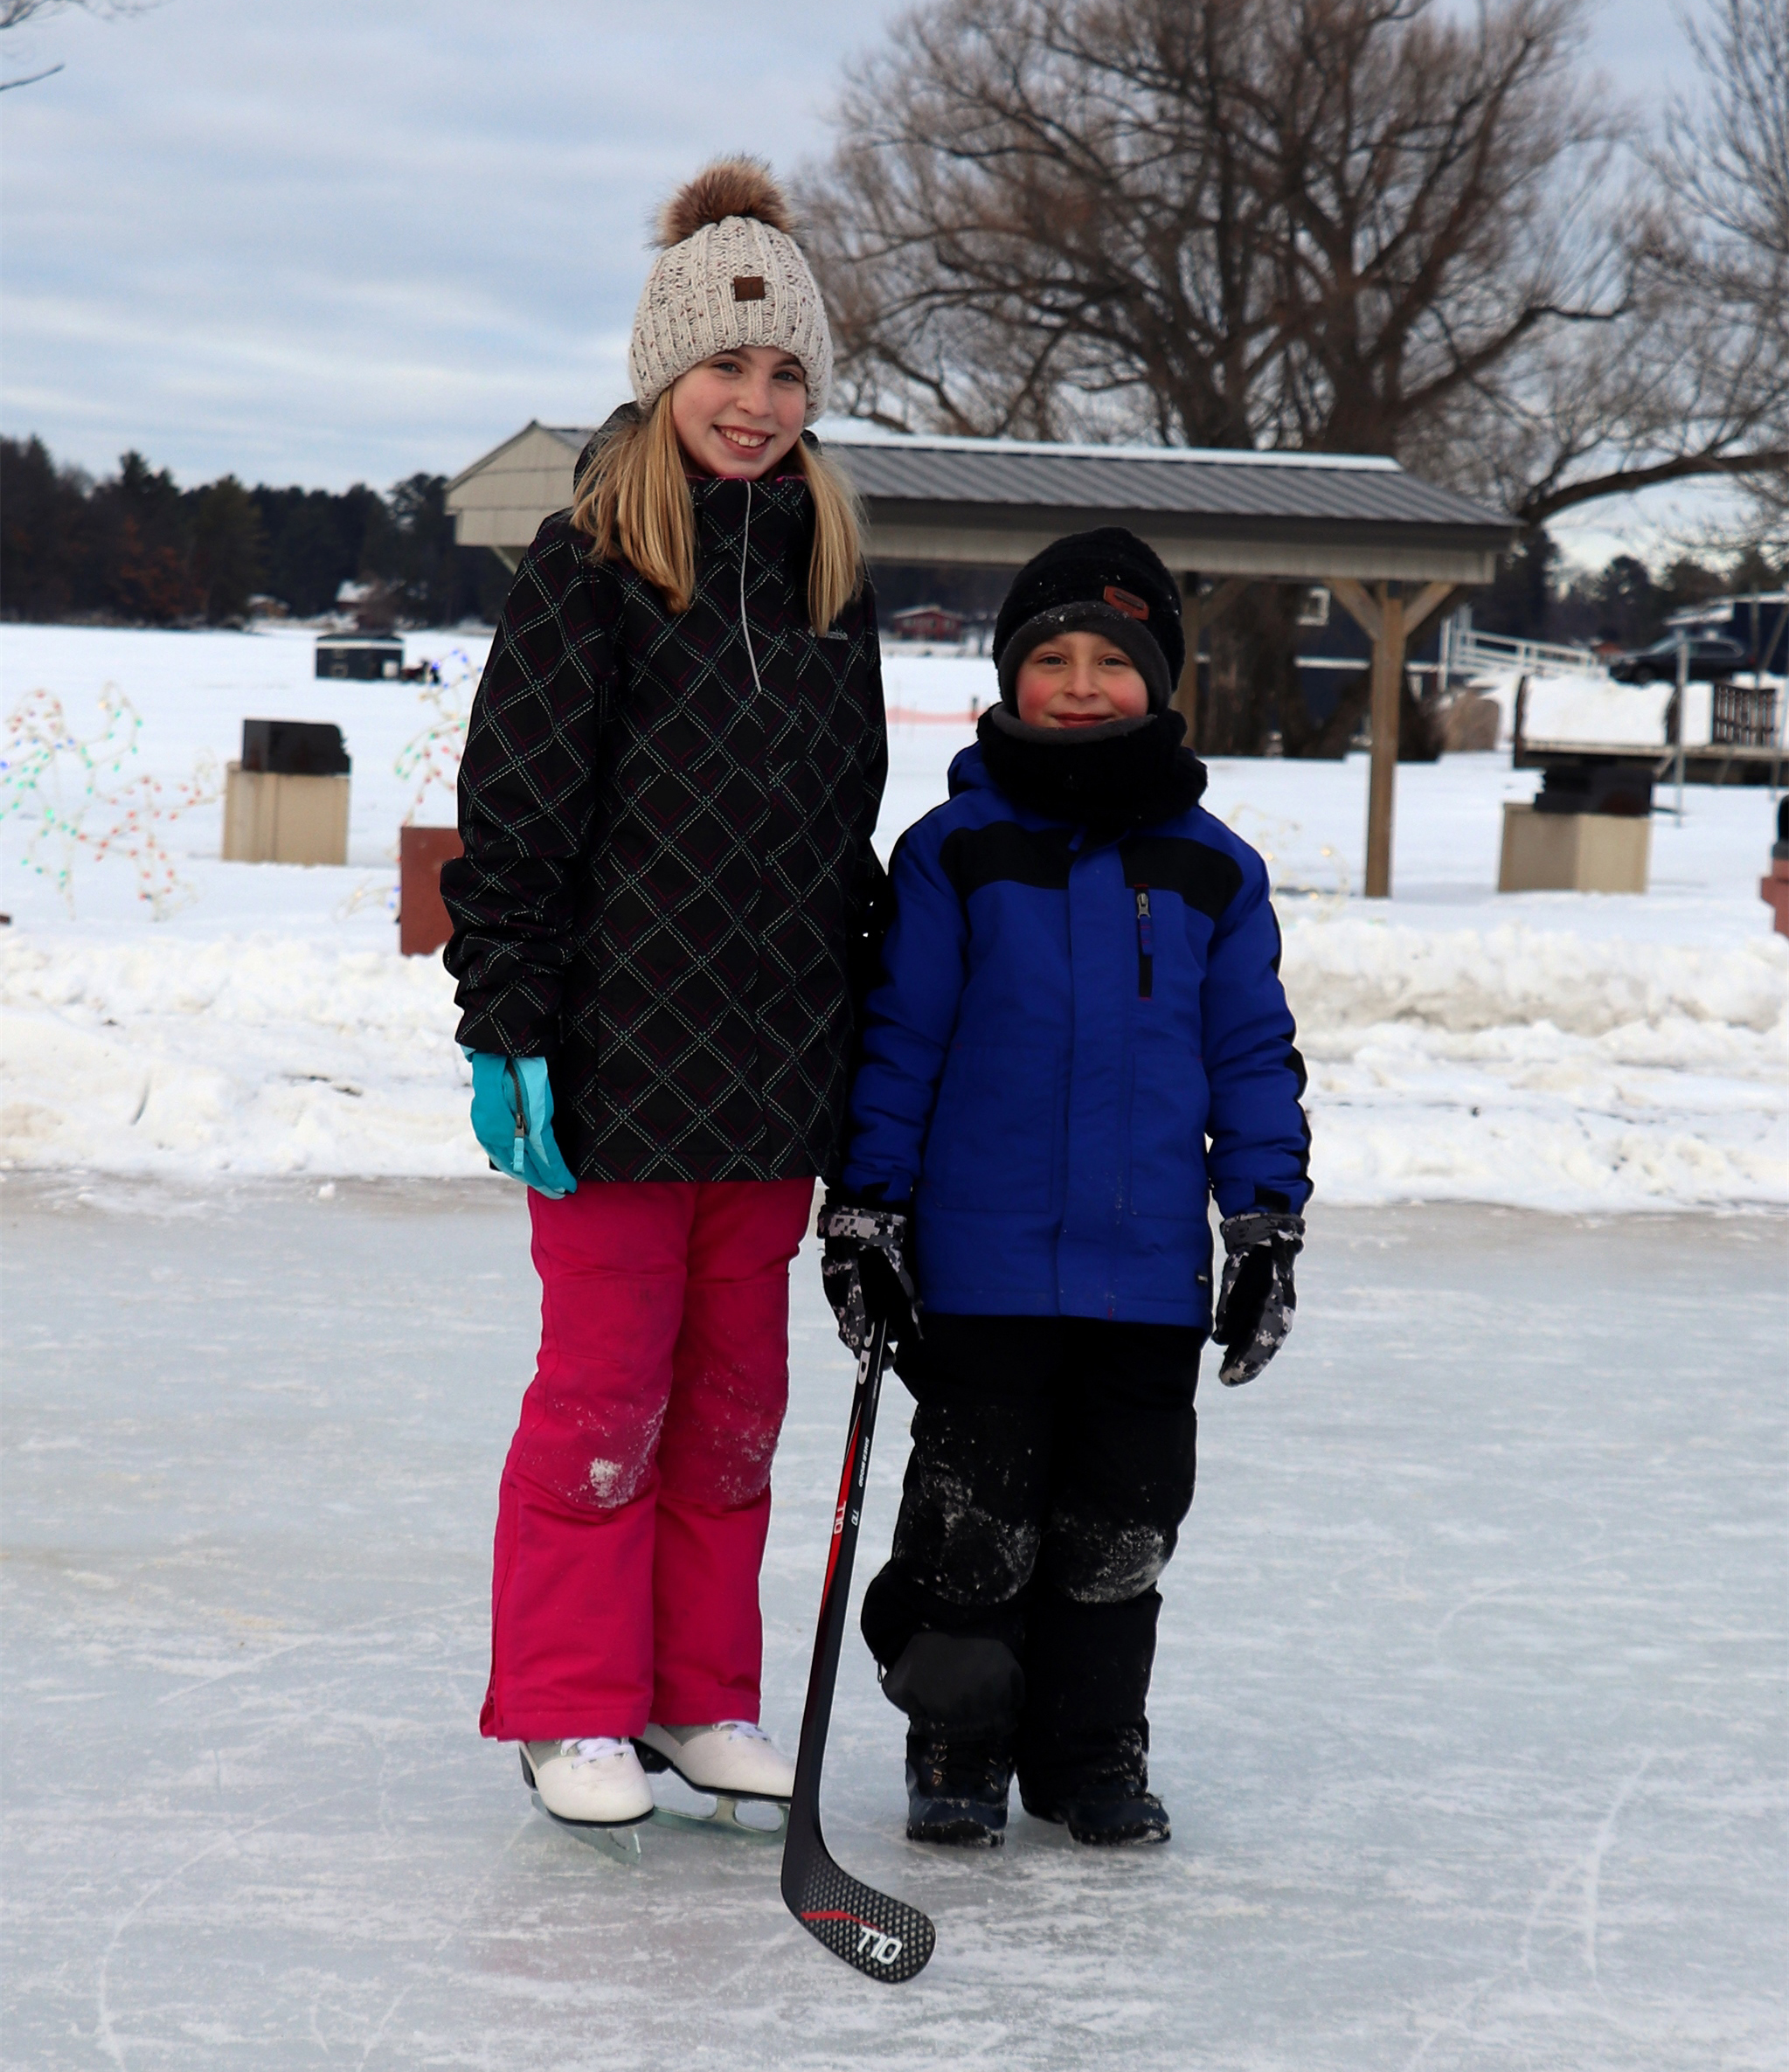 Sydney and her brother Sawyer enjoy skating on the ice at Torpy Park, Minocqua. Kim Johnson photo